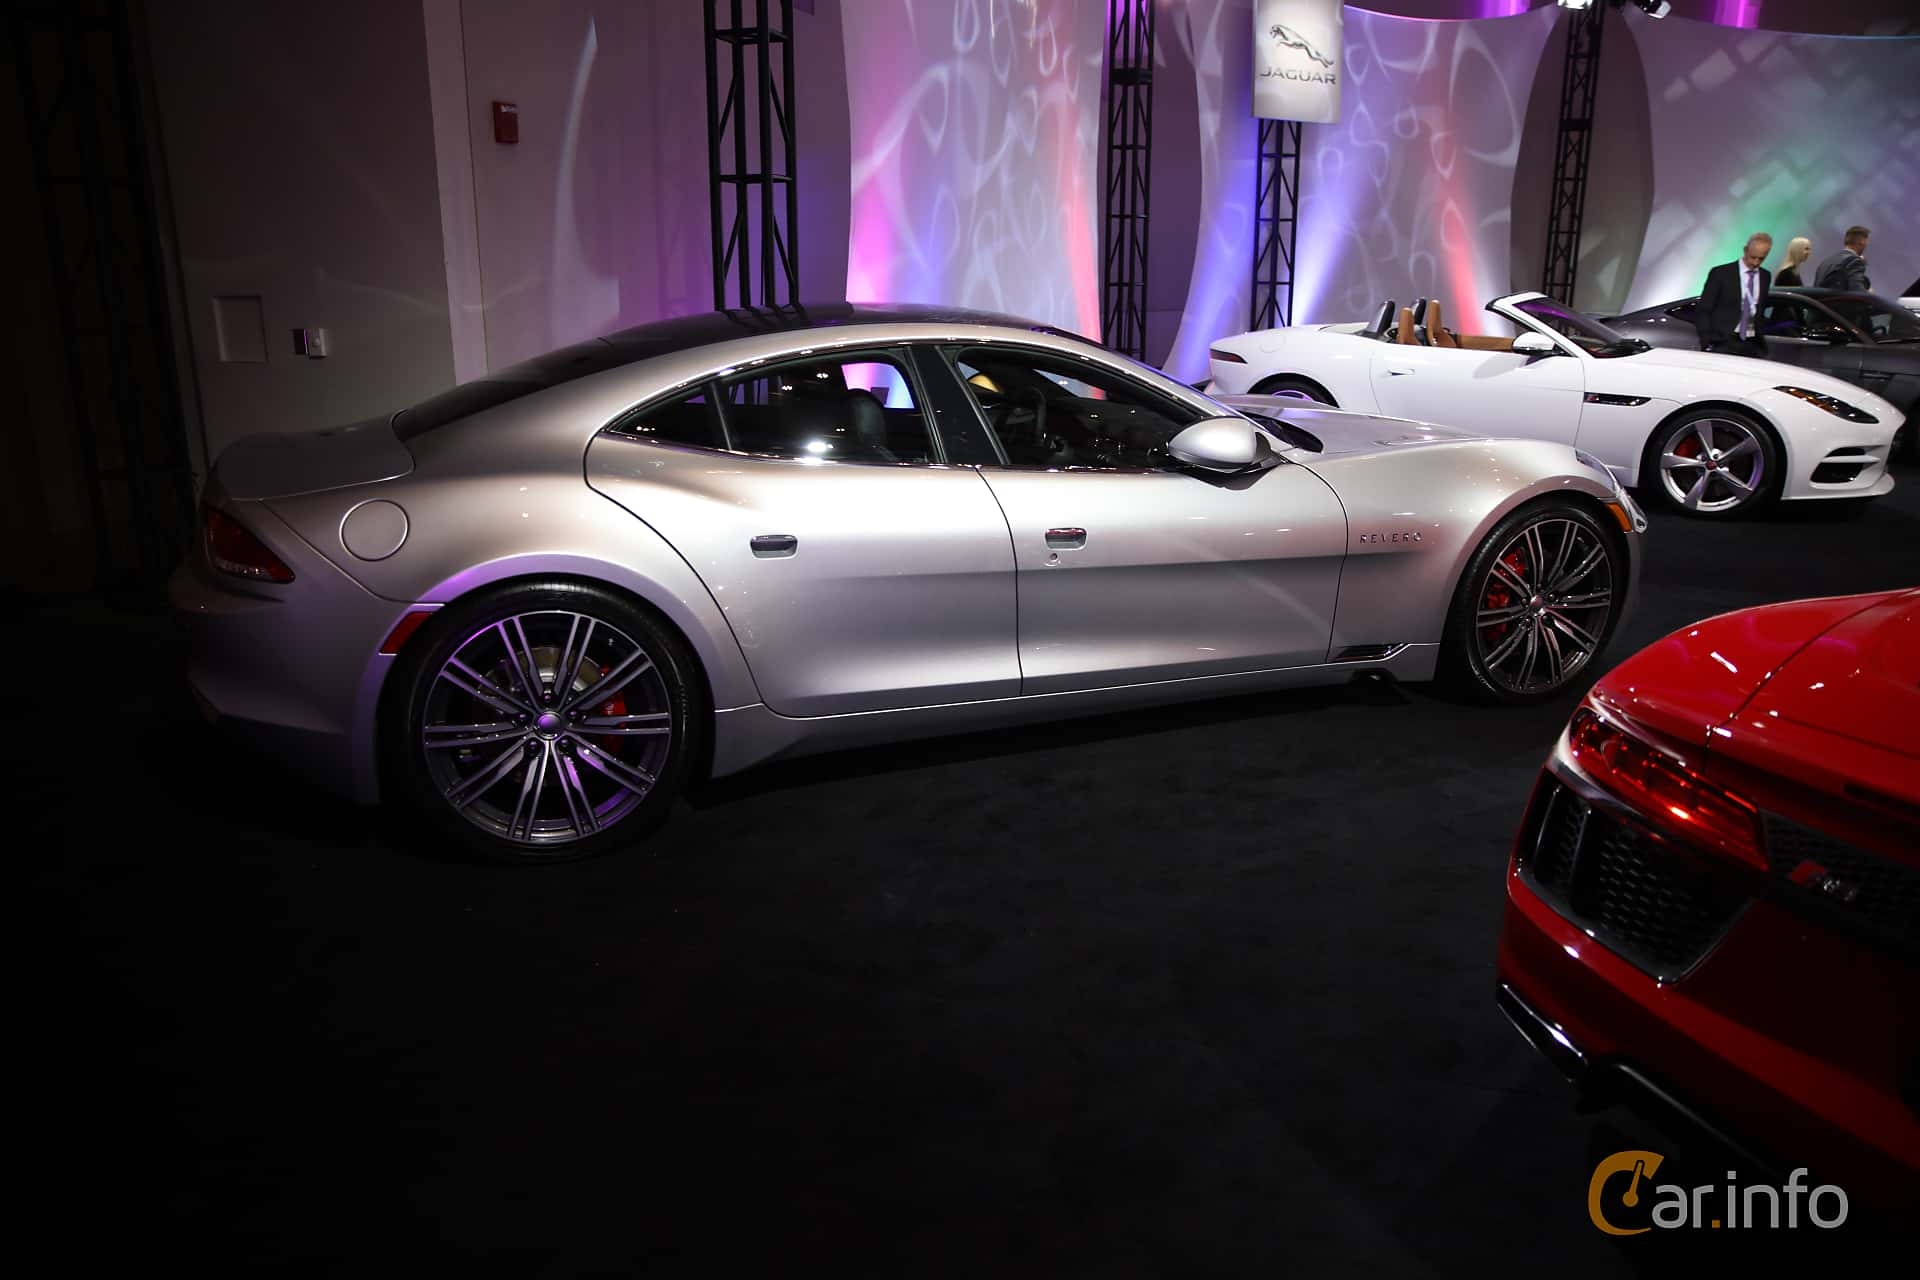 Karma Revero 2.0 + 21.4 kWh Prundletronic, 409hp, 2018 at North American International Auto Show 2018